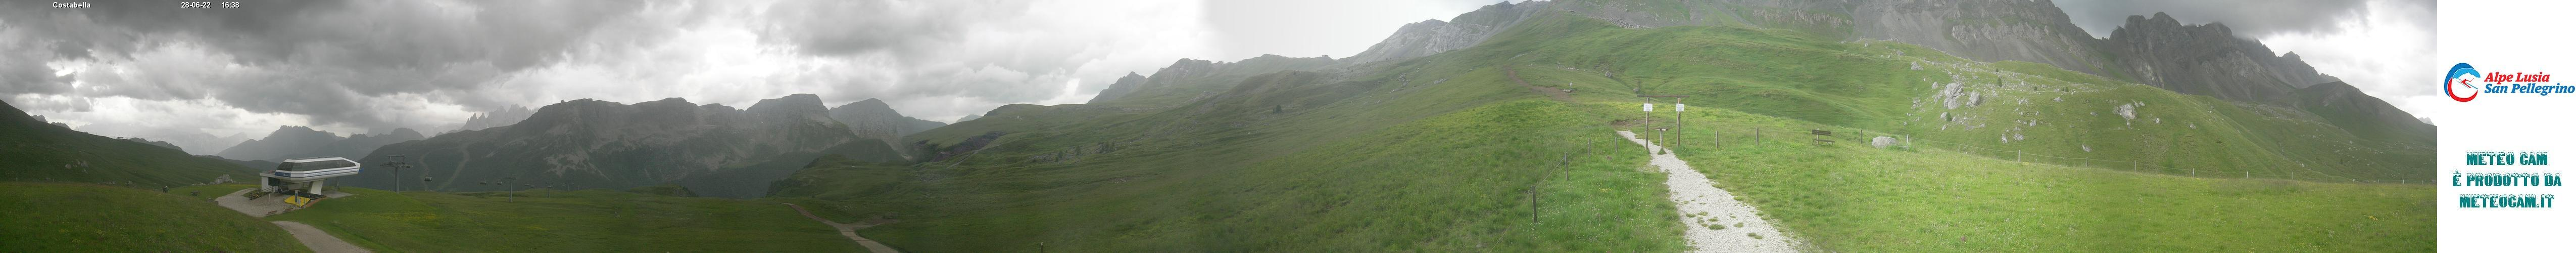 Webcam panorama realtime 360° San Pellegrino Pass - Costabella - Altitude:2,175 metresArea:Costabella chair liftPanoramic viewpoint: 360° real timewebcam. Panoramic view over the slopes and the liftsof the San Pellegrino ski area. View from thetop station of the